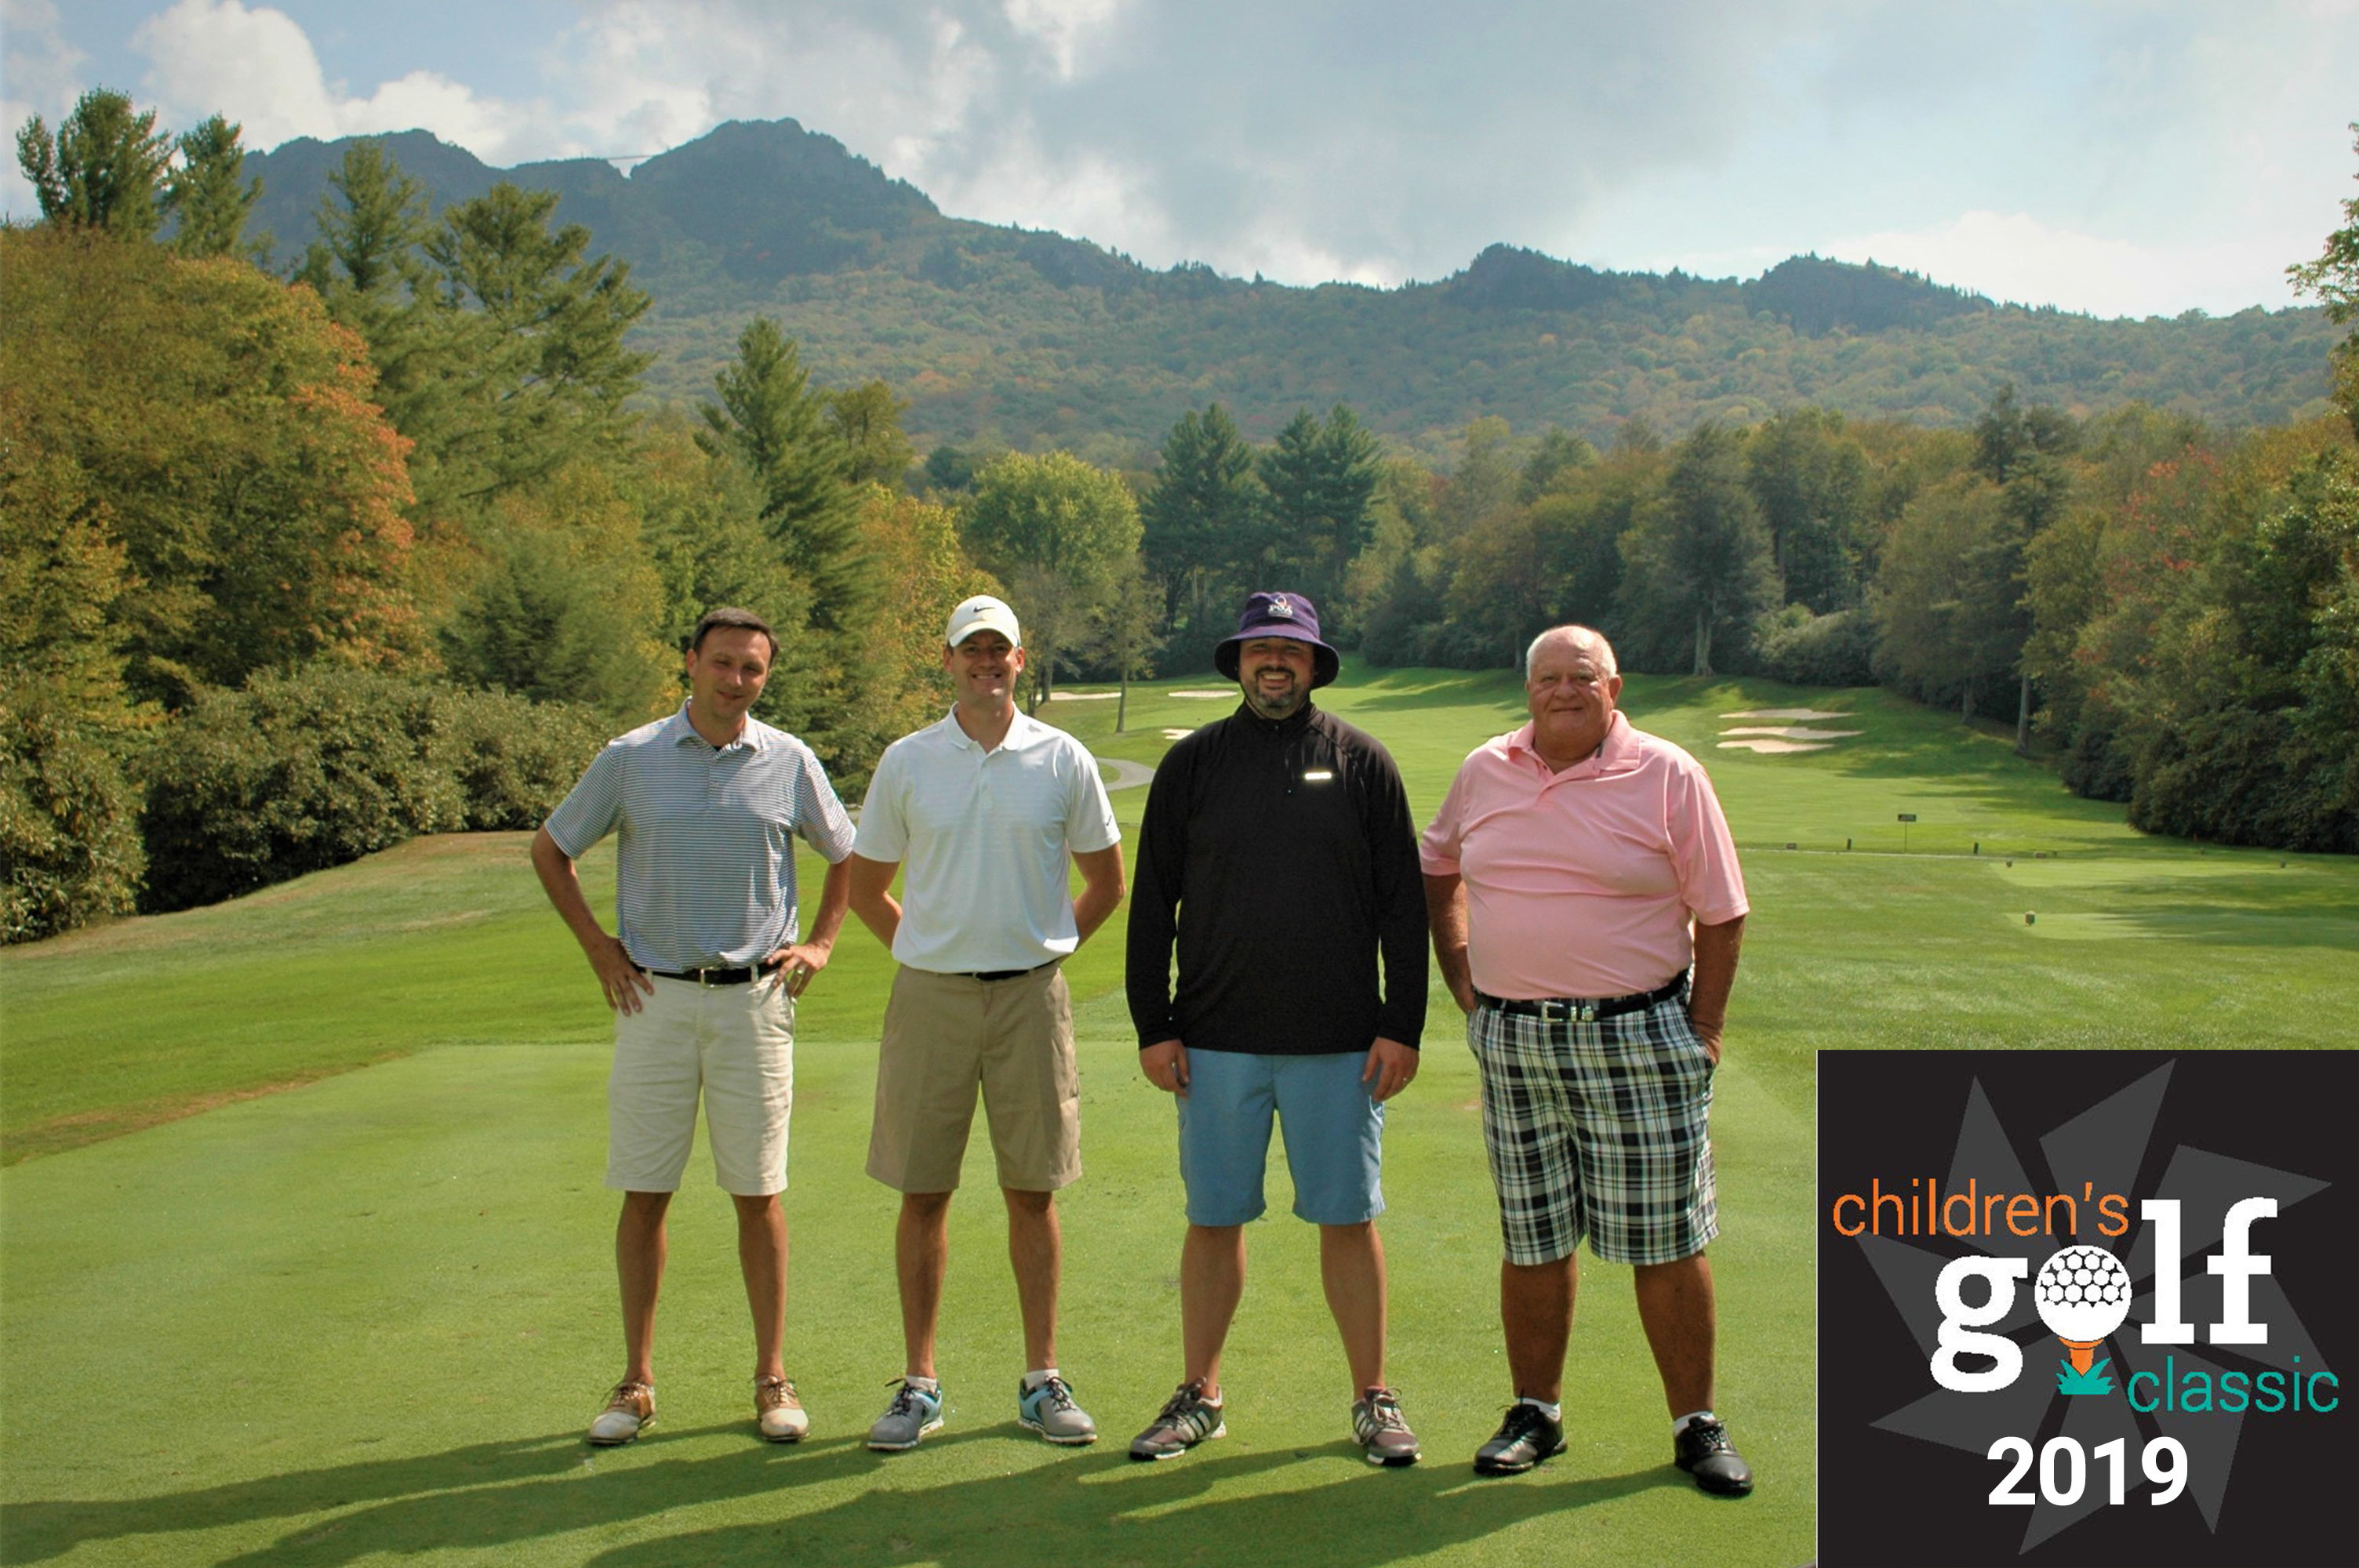 Children's Golf Classic gallery image #6